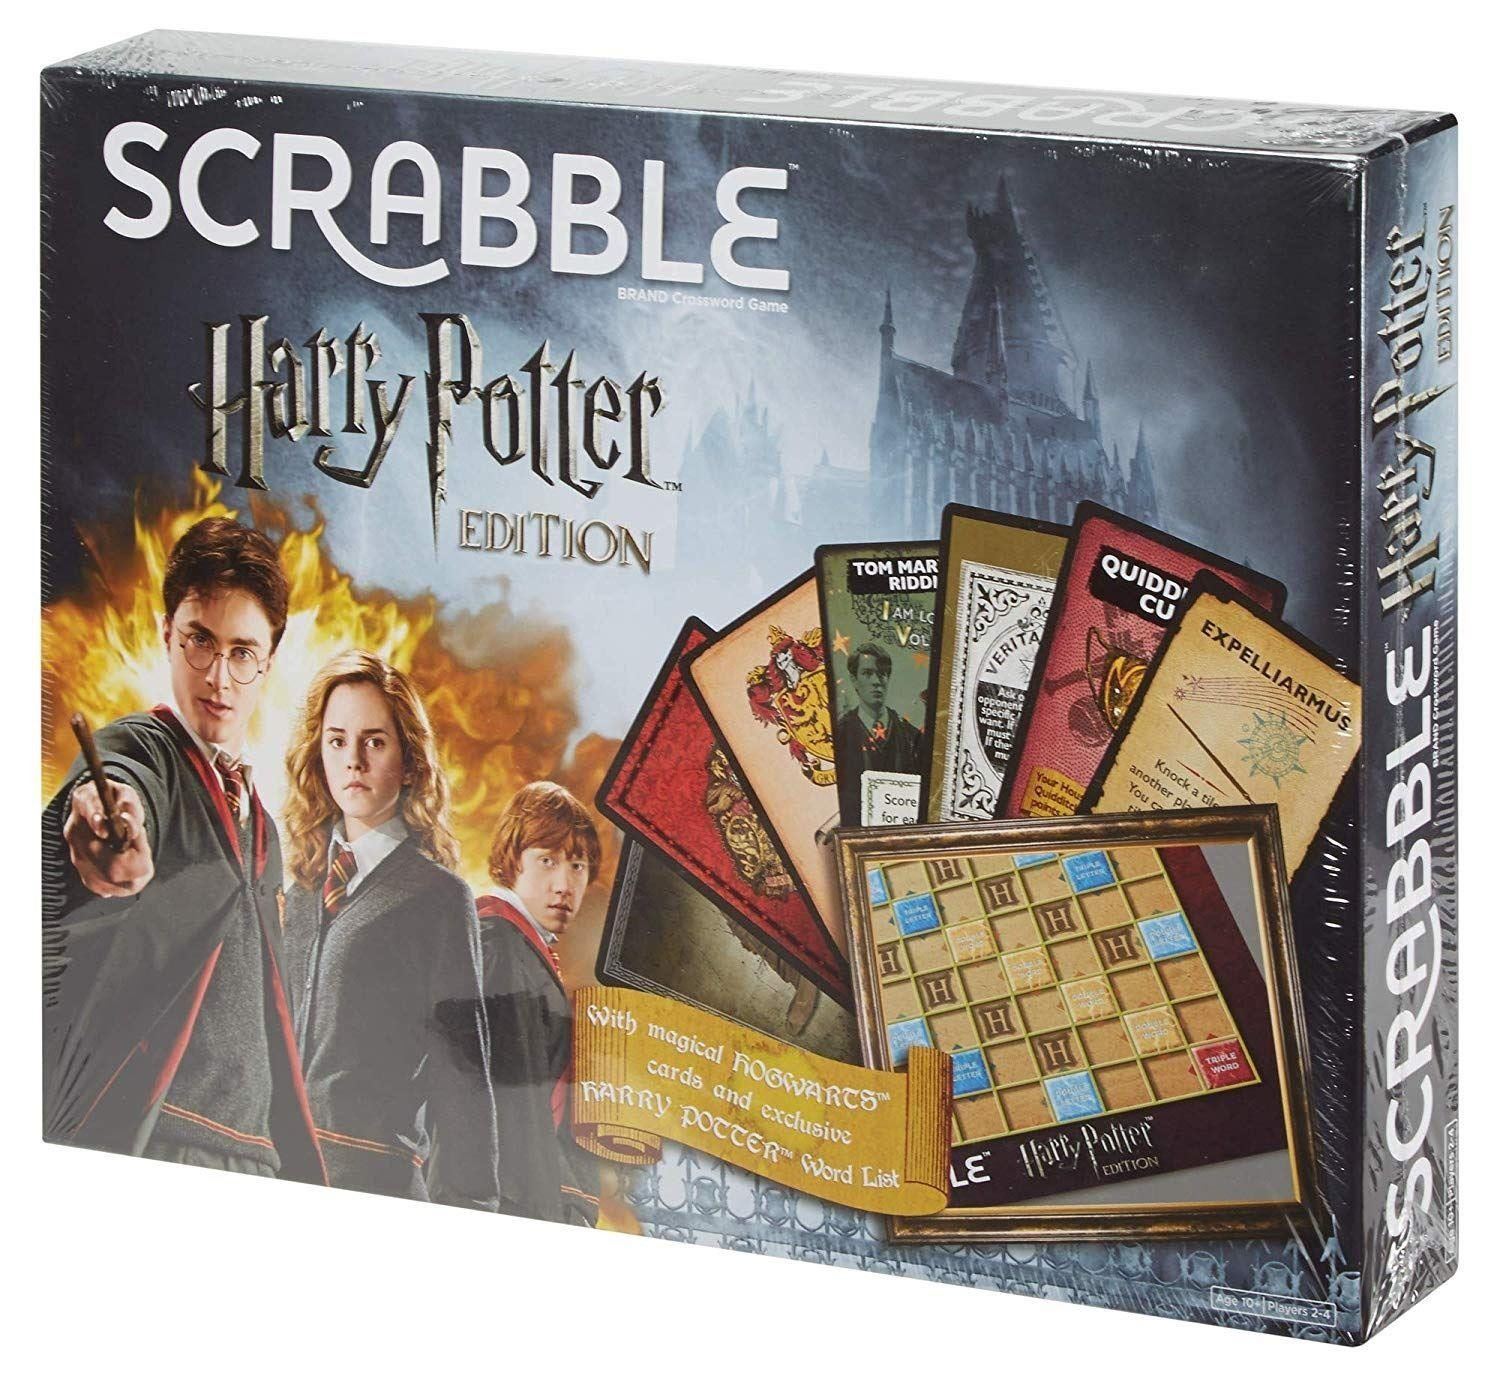 USA OPOLY SCRABBLE HARRY POTTER